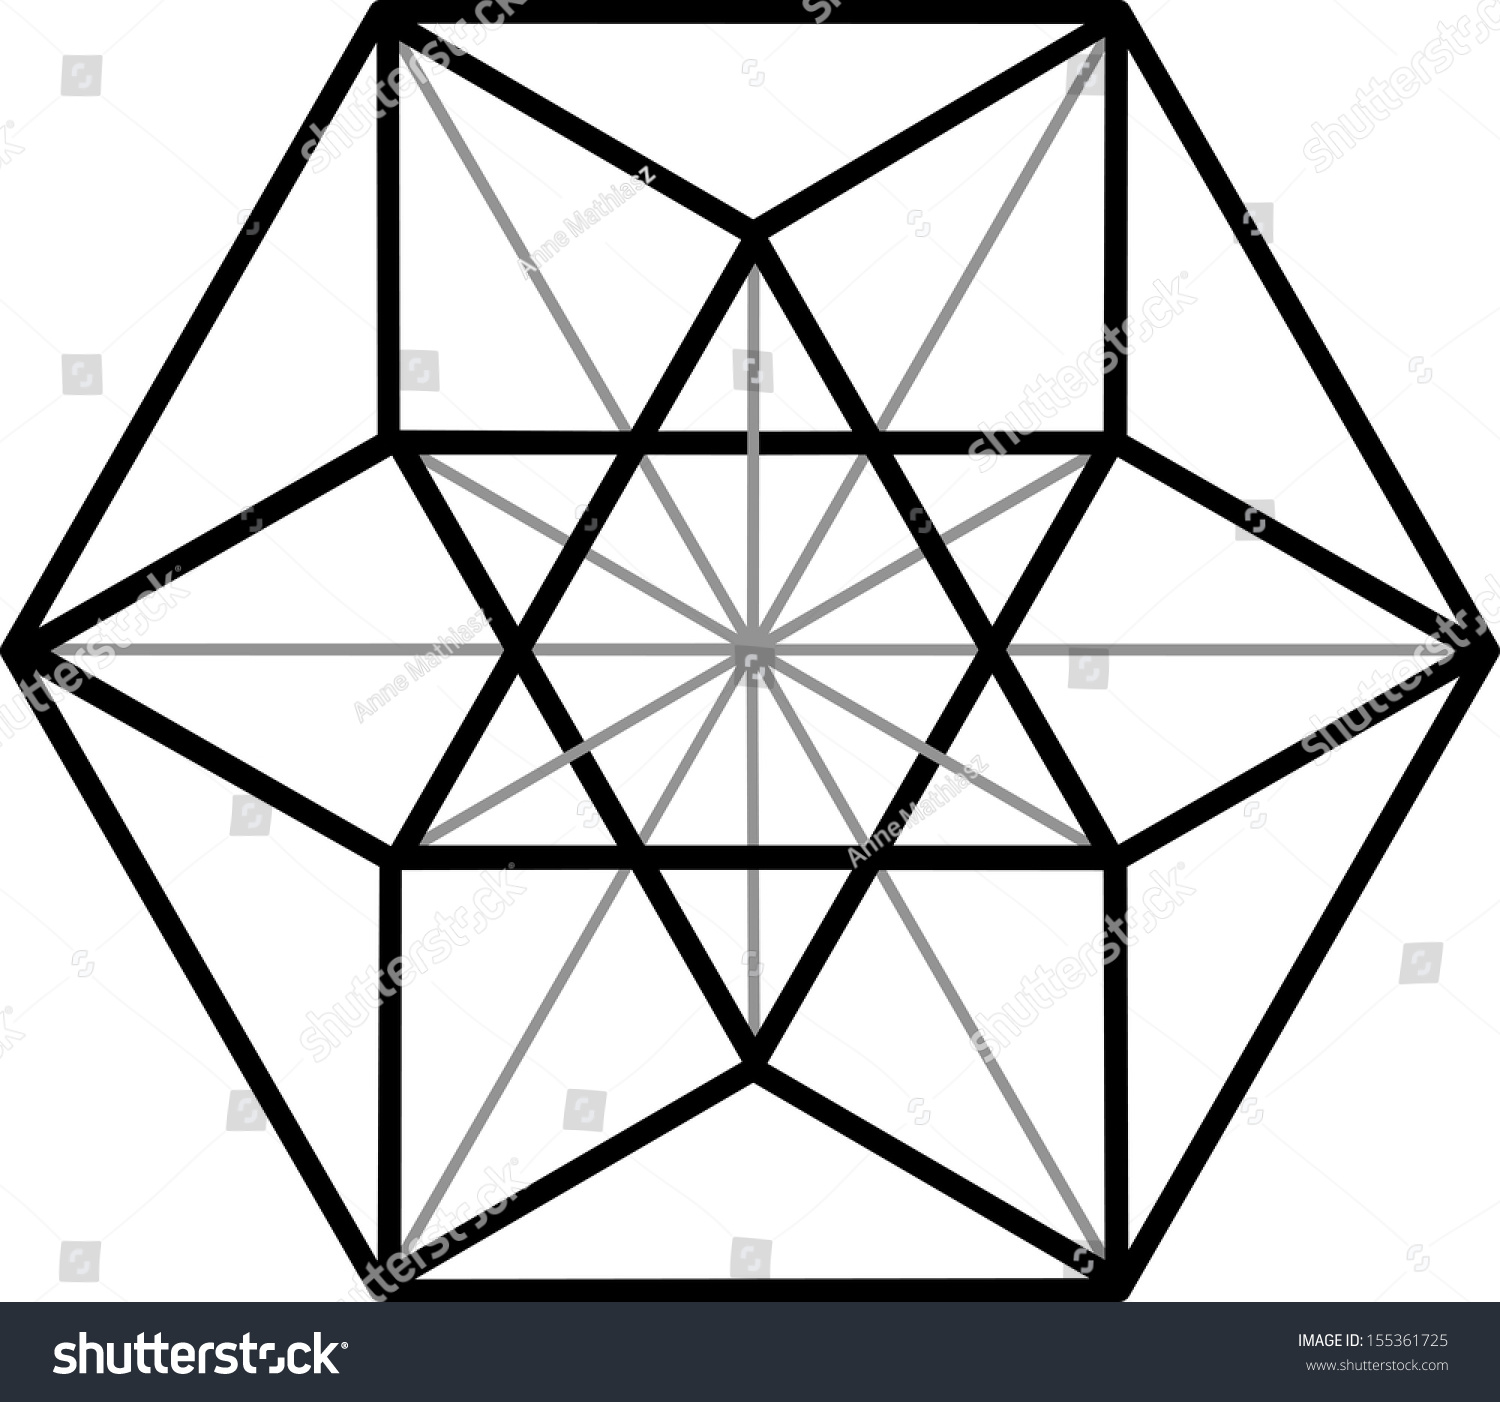 What is a vector equilibrium